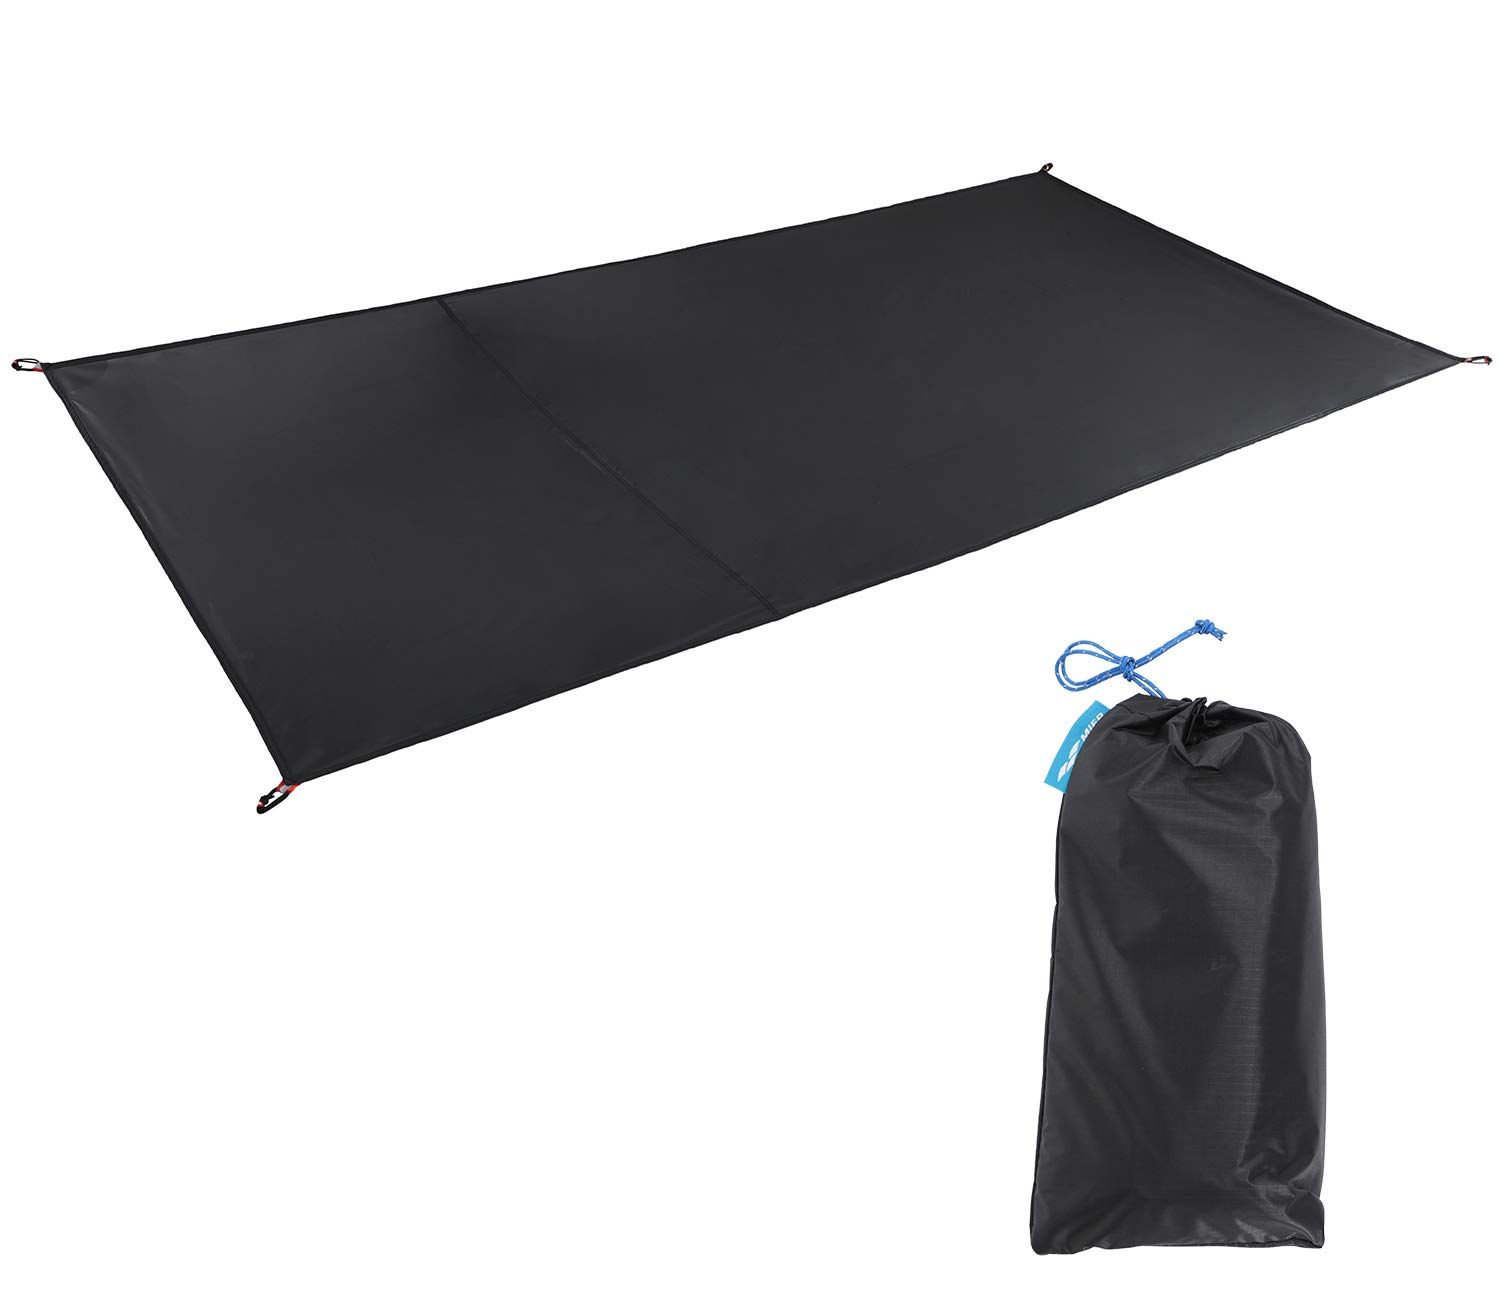 MIER 1-2 Person Ultralight Waterproof Footprint Outdoor Camping Tent Tarp Canopy Blanket Picnic Ground Sheet Mat, Ultralight Tent Fitted, 2 Person by MIER